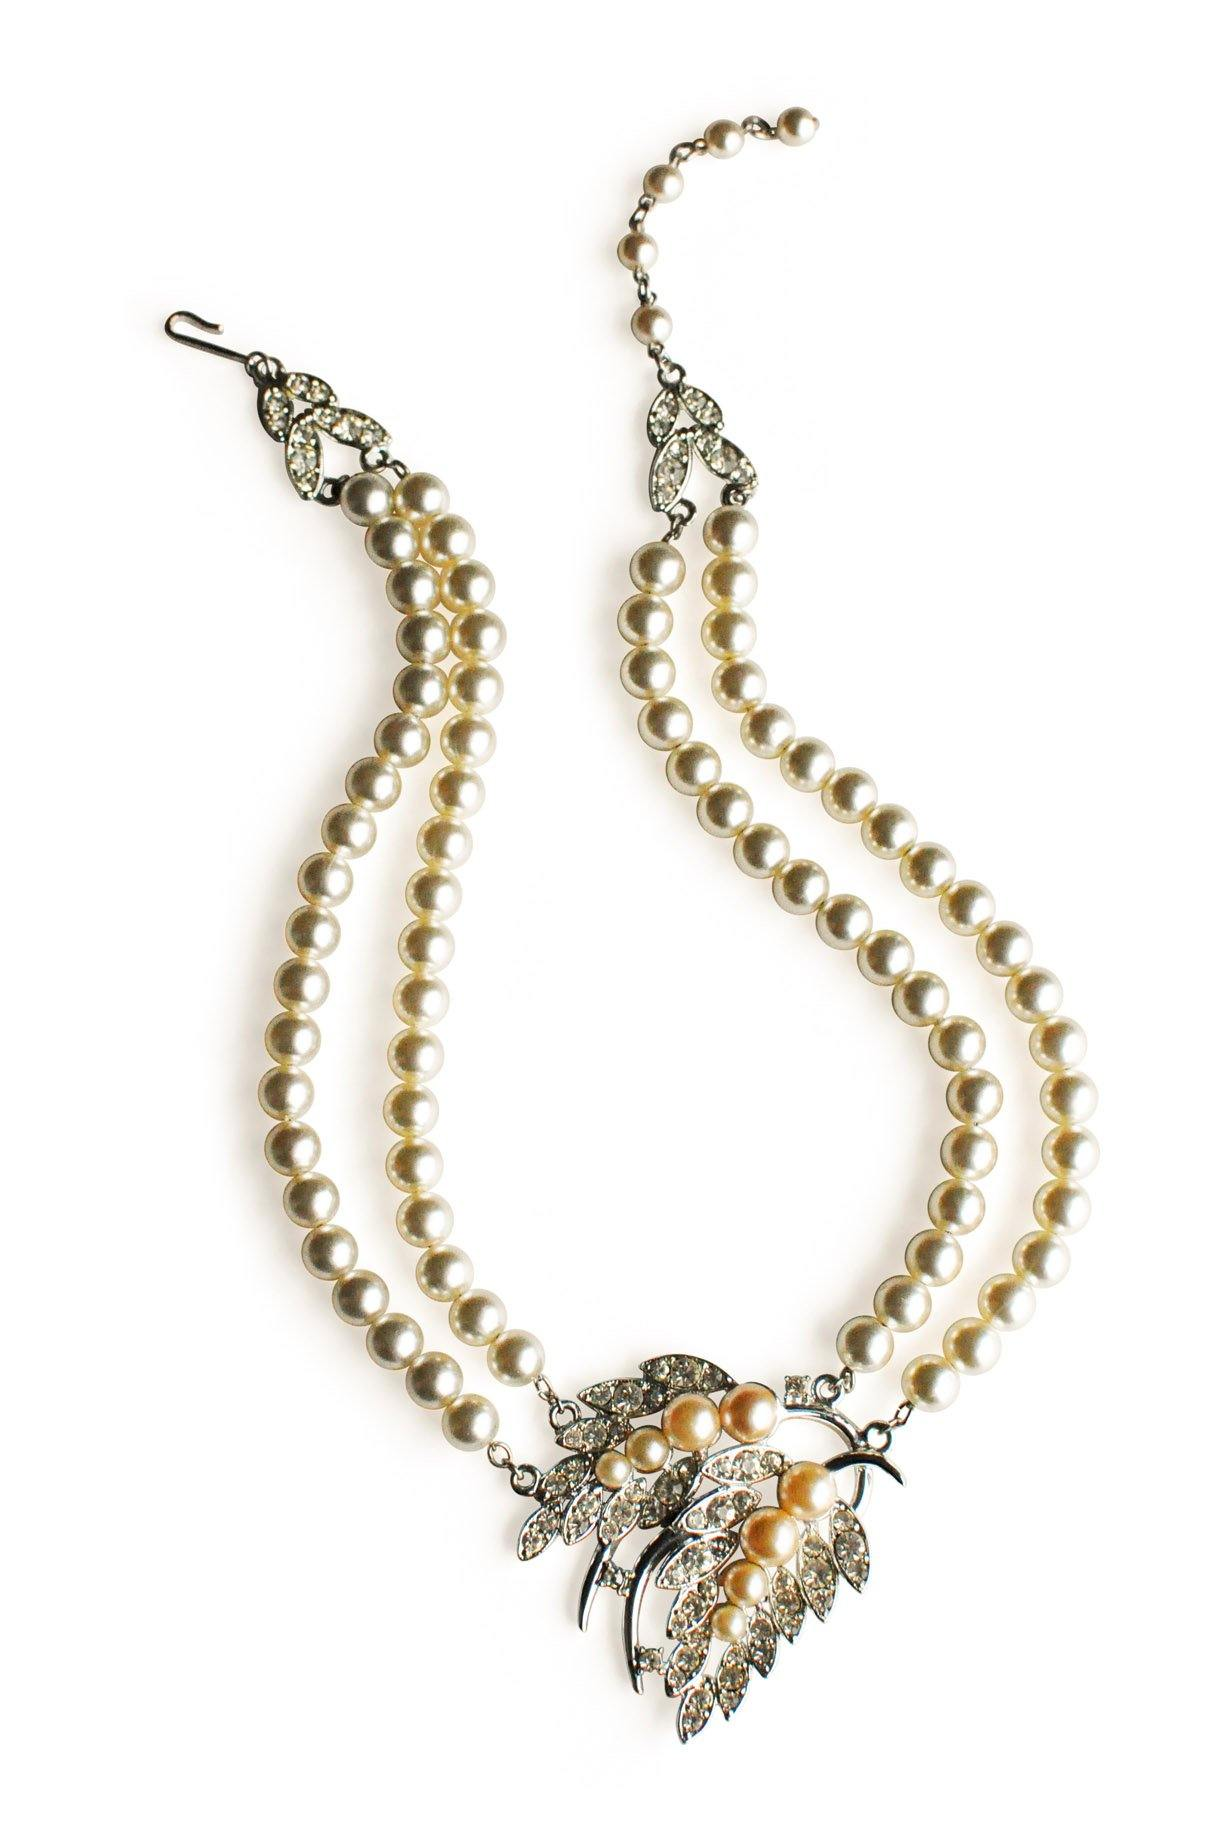 Emmons Silver Rhinestone Pearl Necklace from Sweet & Spark